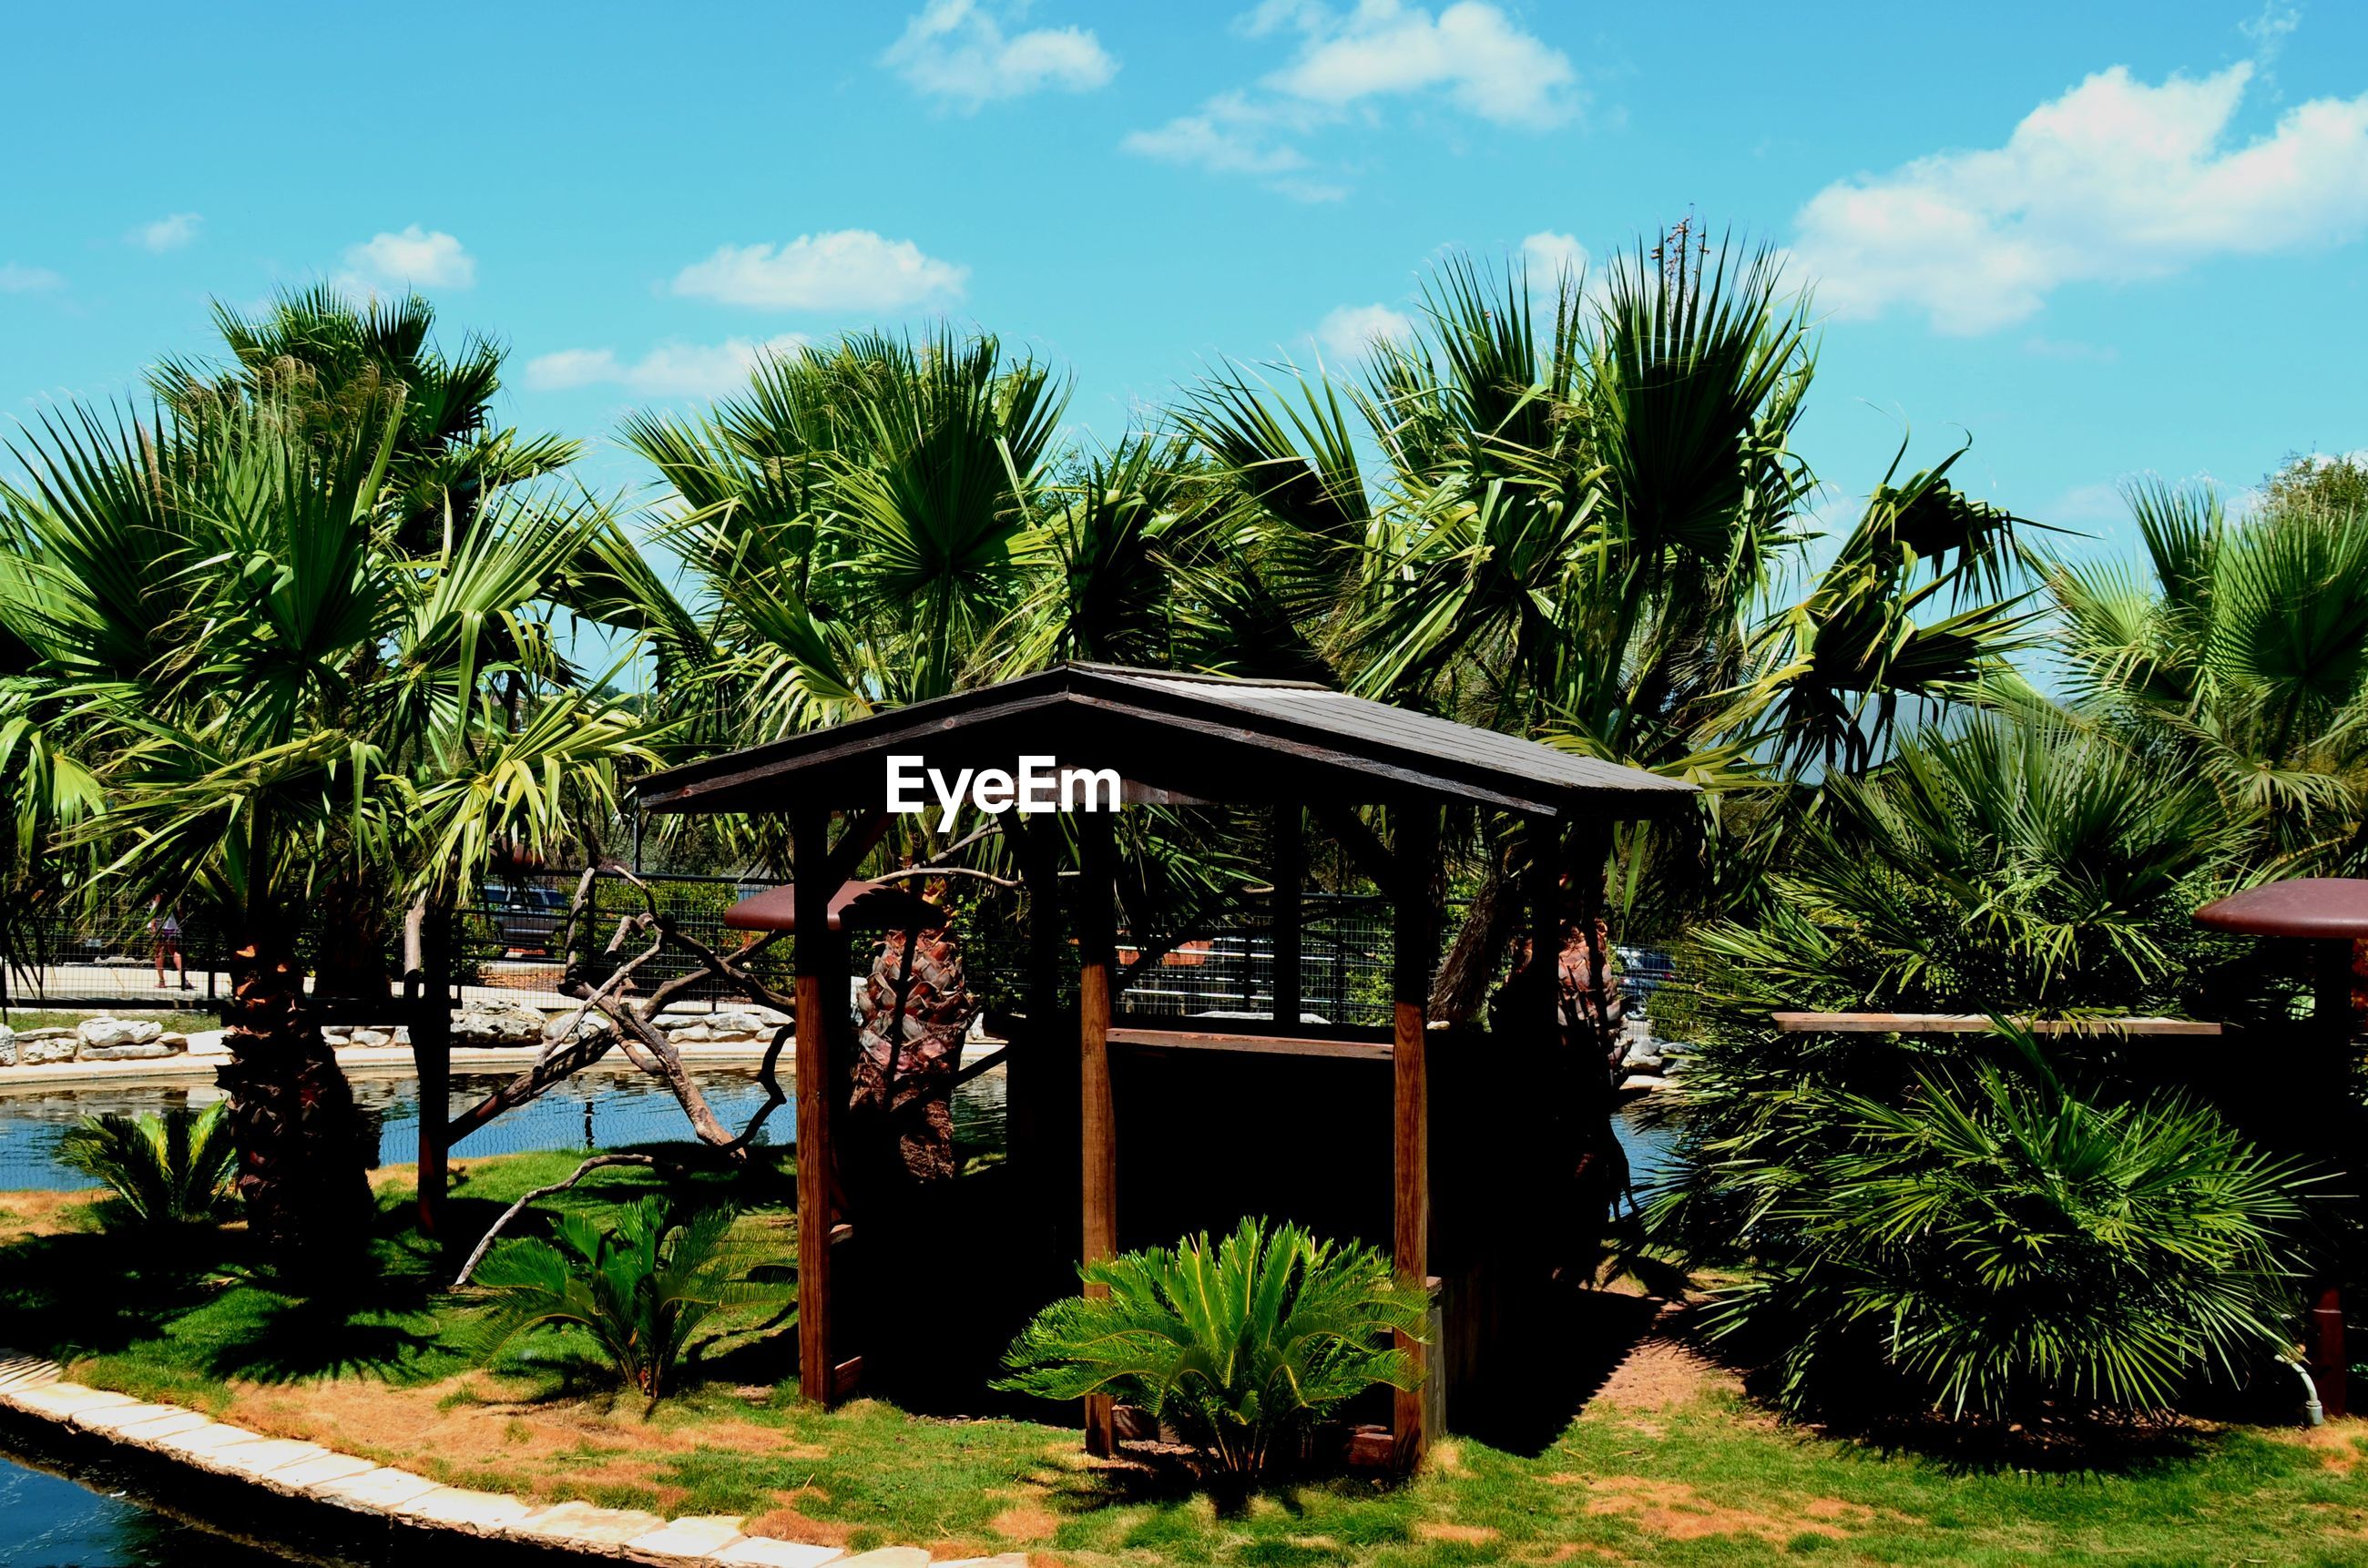 GAZEBO BY PALM TREES AGAINST SKY